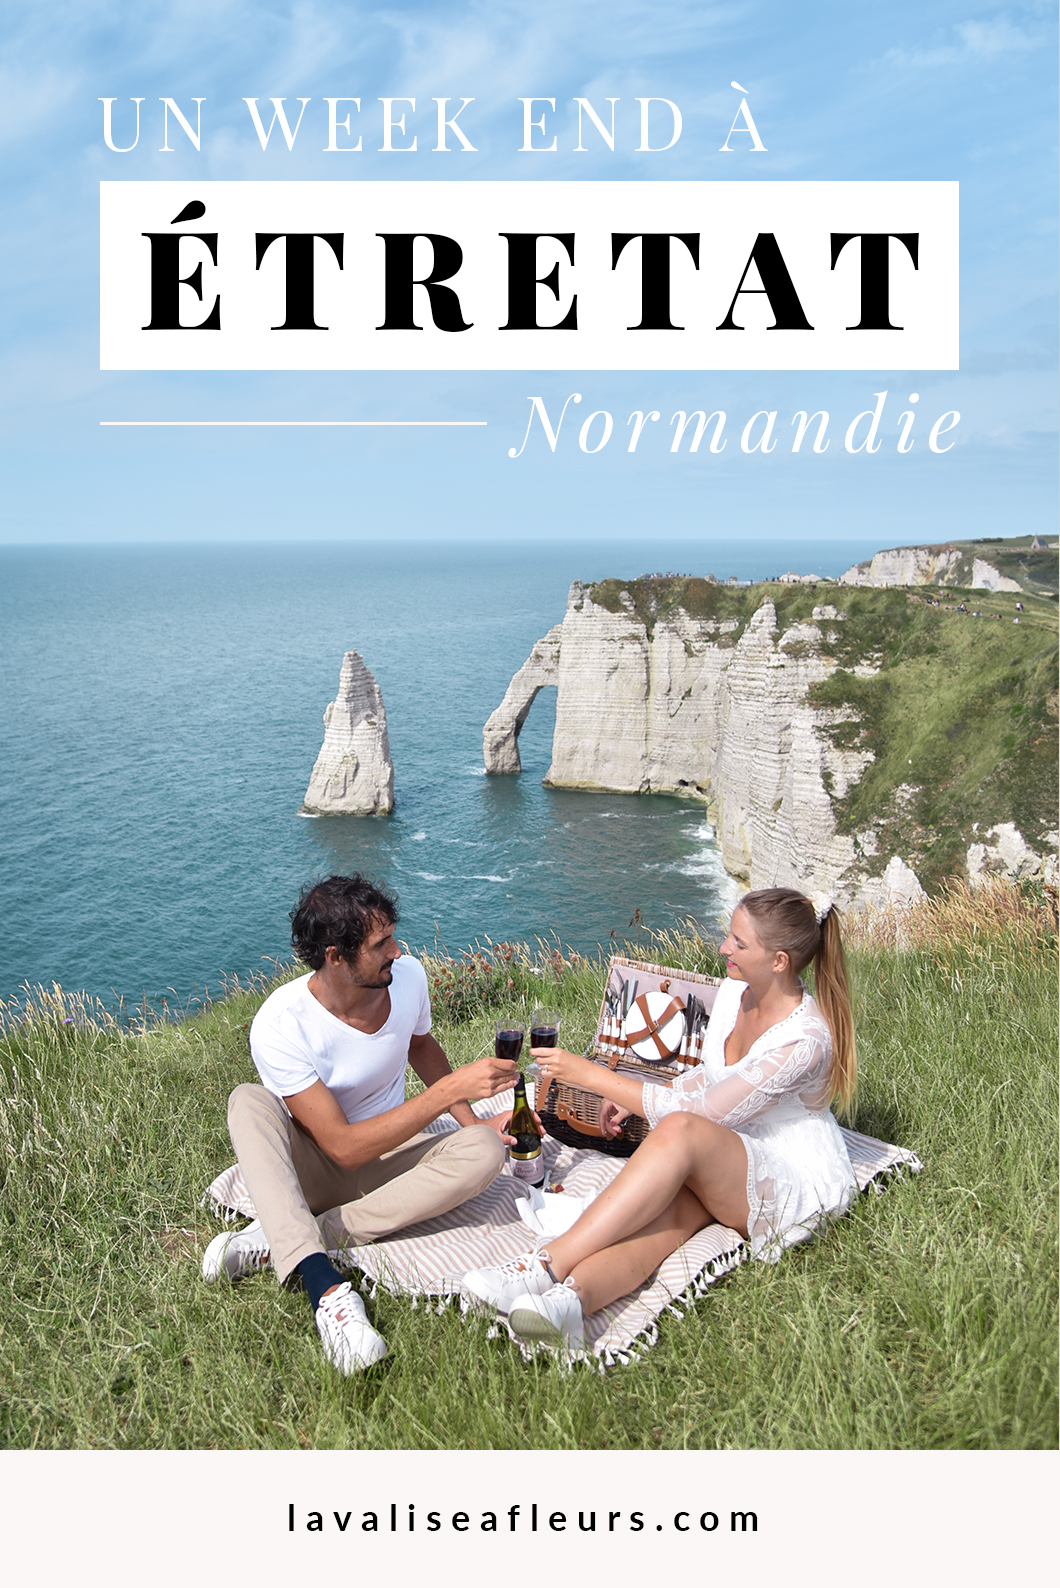 Un week end à Étretat en Normandie